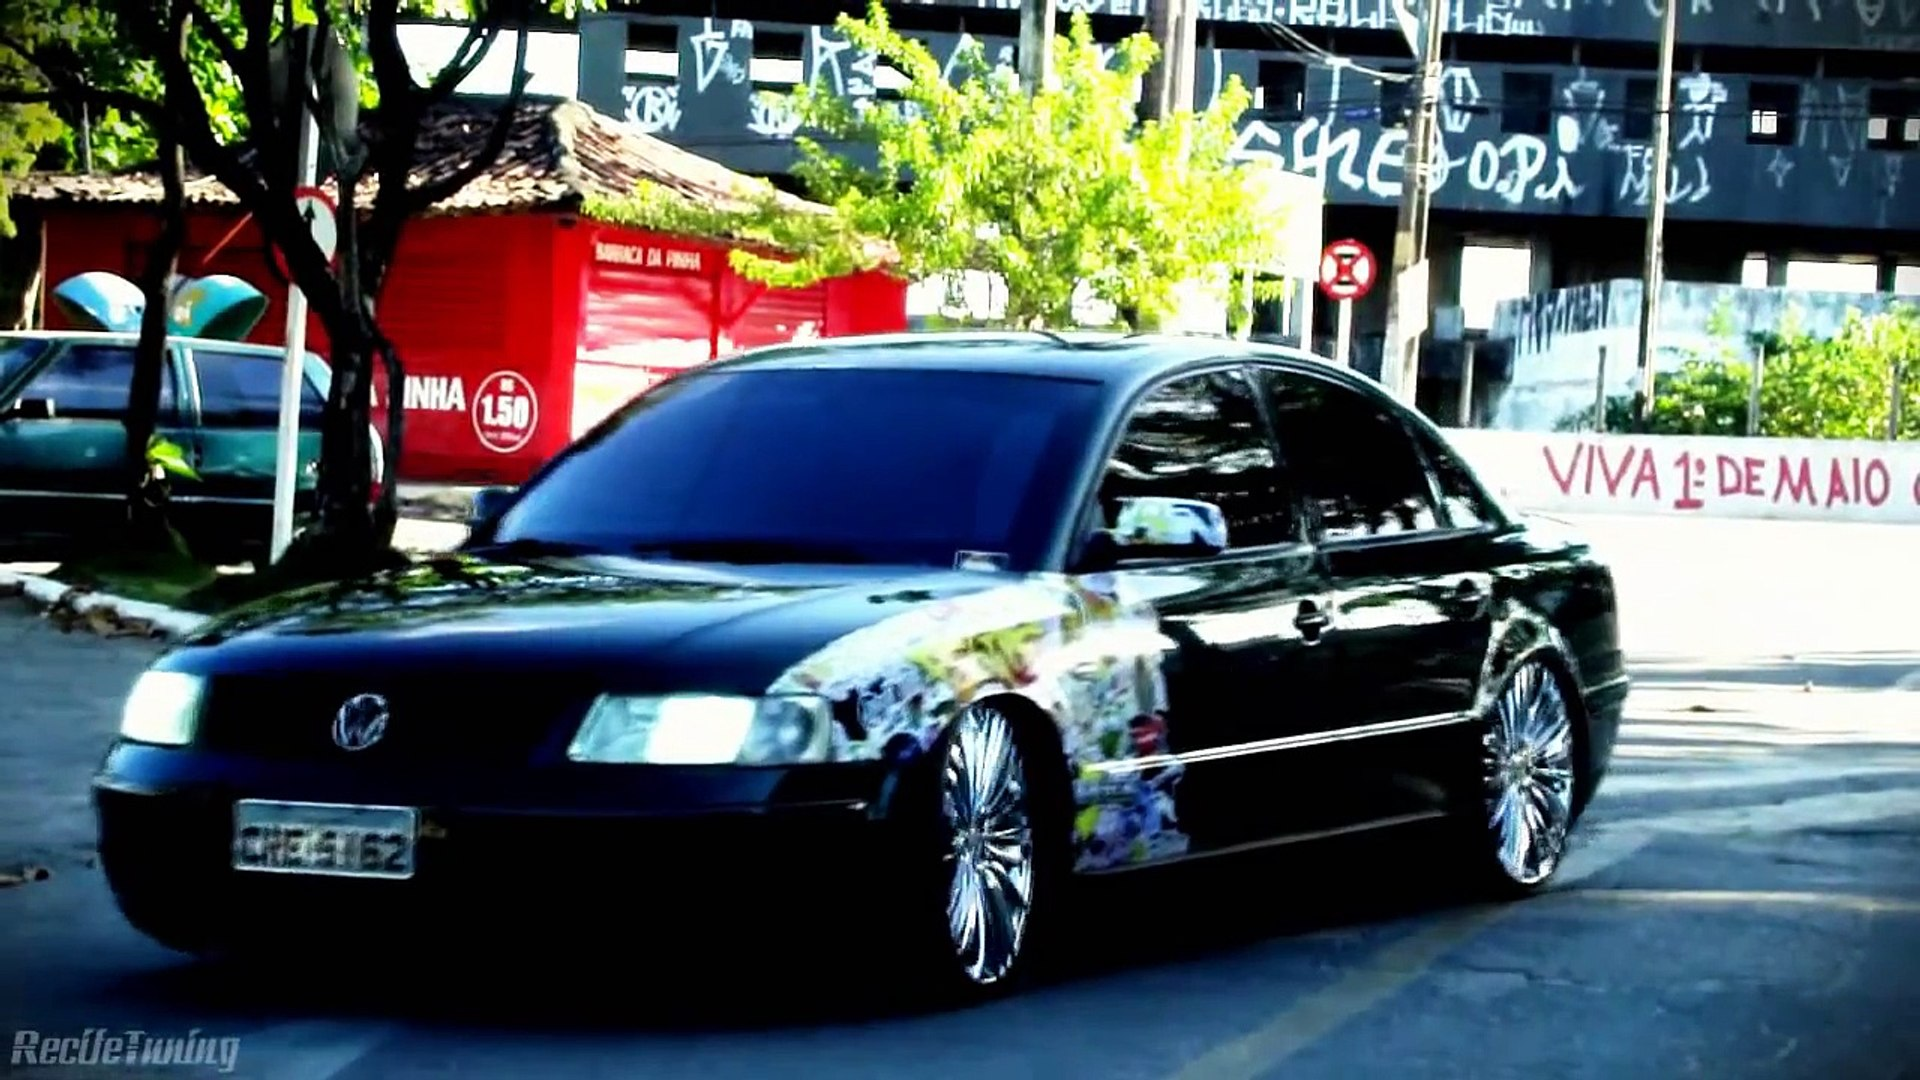 Passat Alemao Blindado Aro 20 Fixa Recife Tuning Video Dailymotion